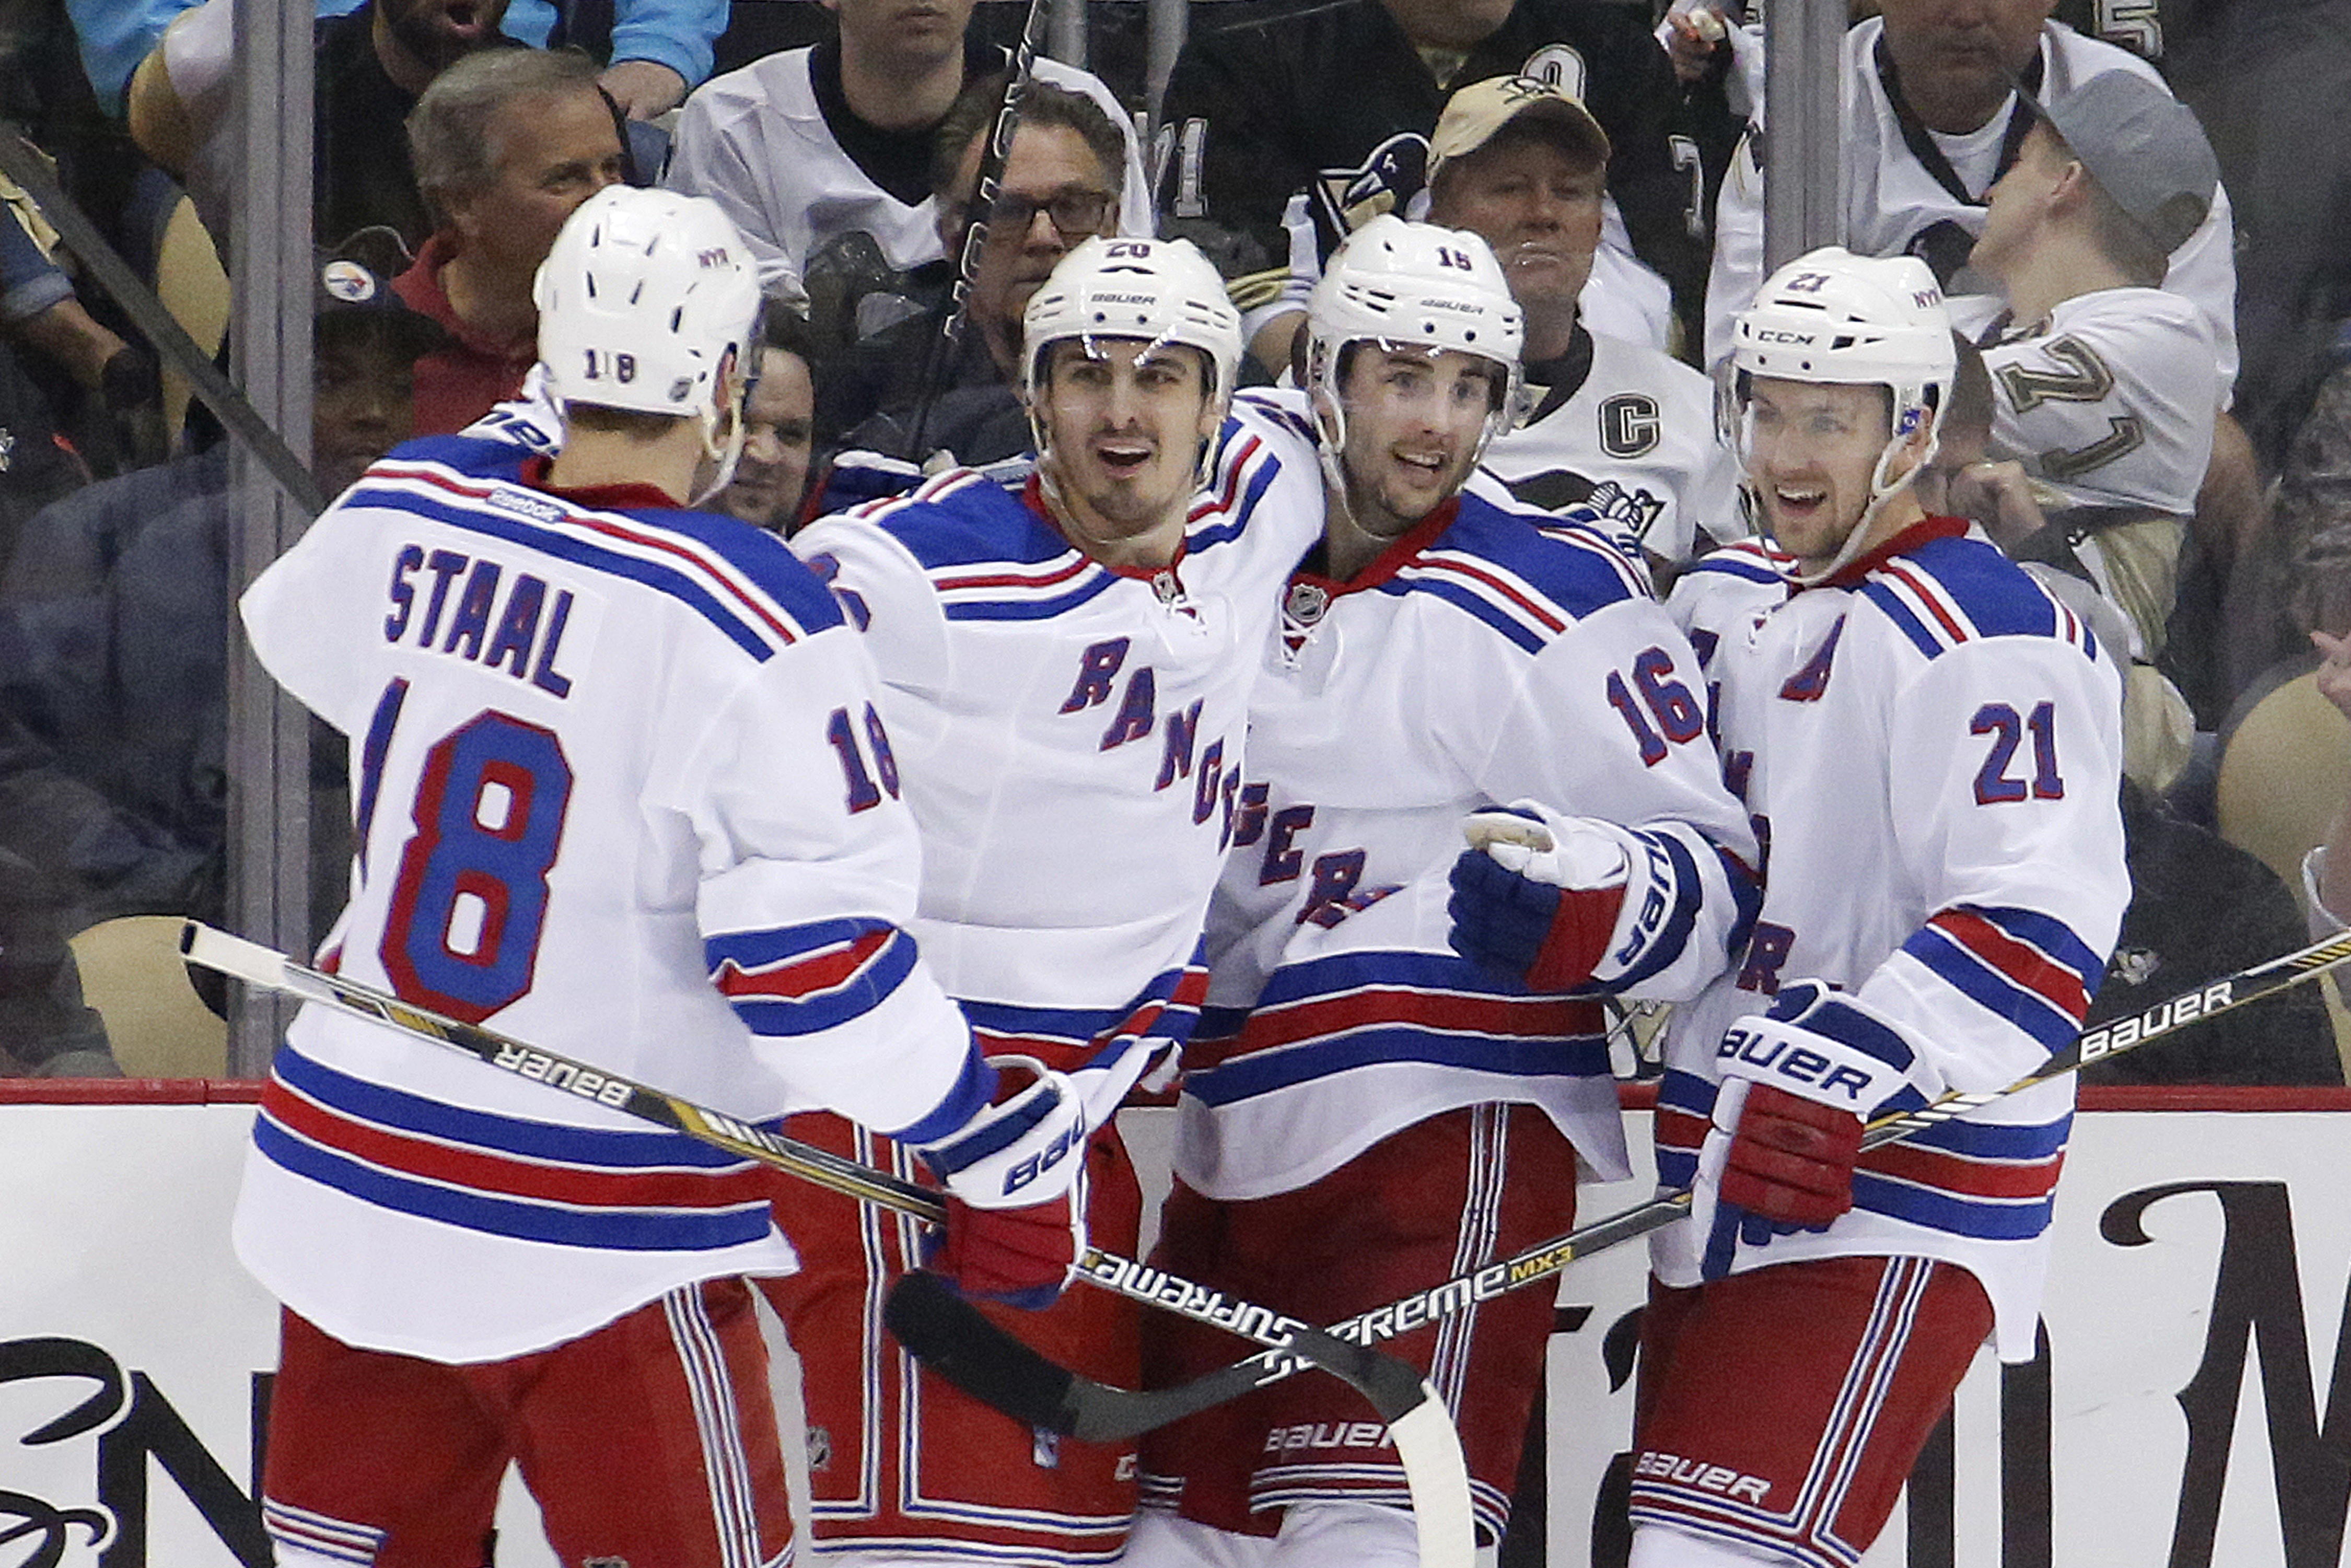 New York Rangers' Chris Kreider (20) celebrates with teammates after his goal during the second period of a first-round NHL playoff hockey game against the Pittsburgh Penguins in Pittsburgh Monday, April 20, 2015.(AP Photo/Gene J. Puskar)